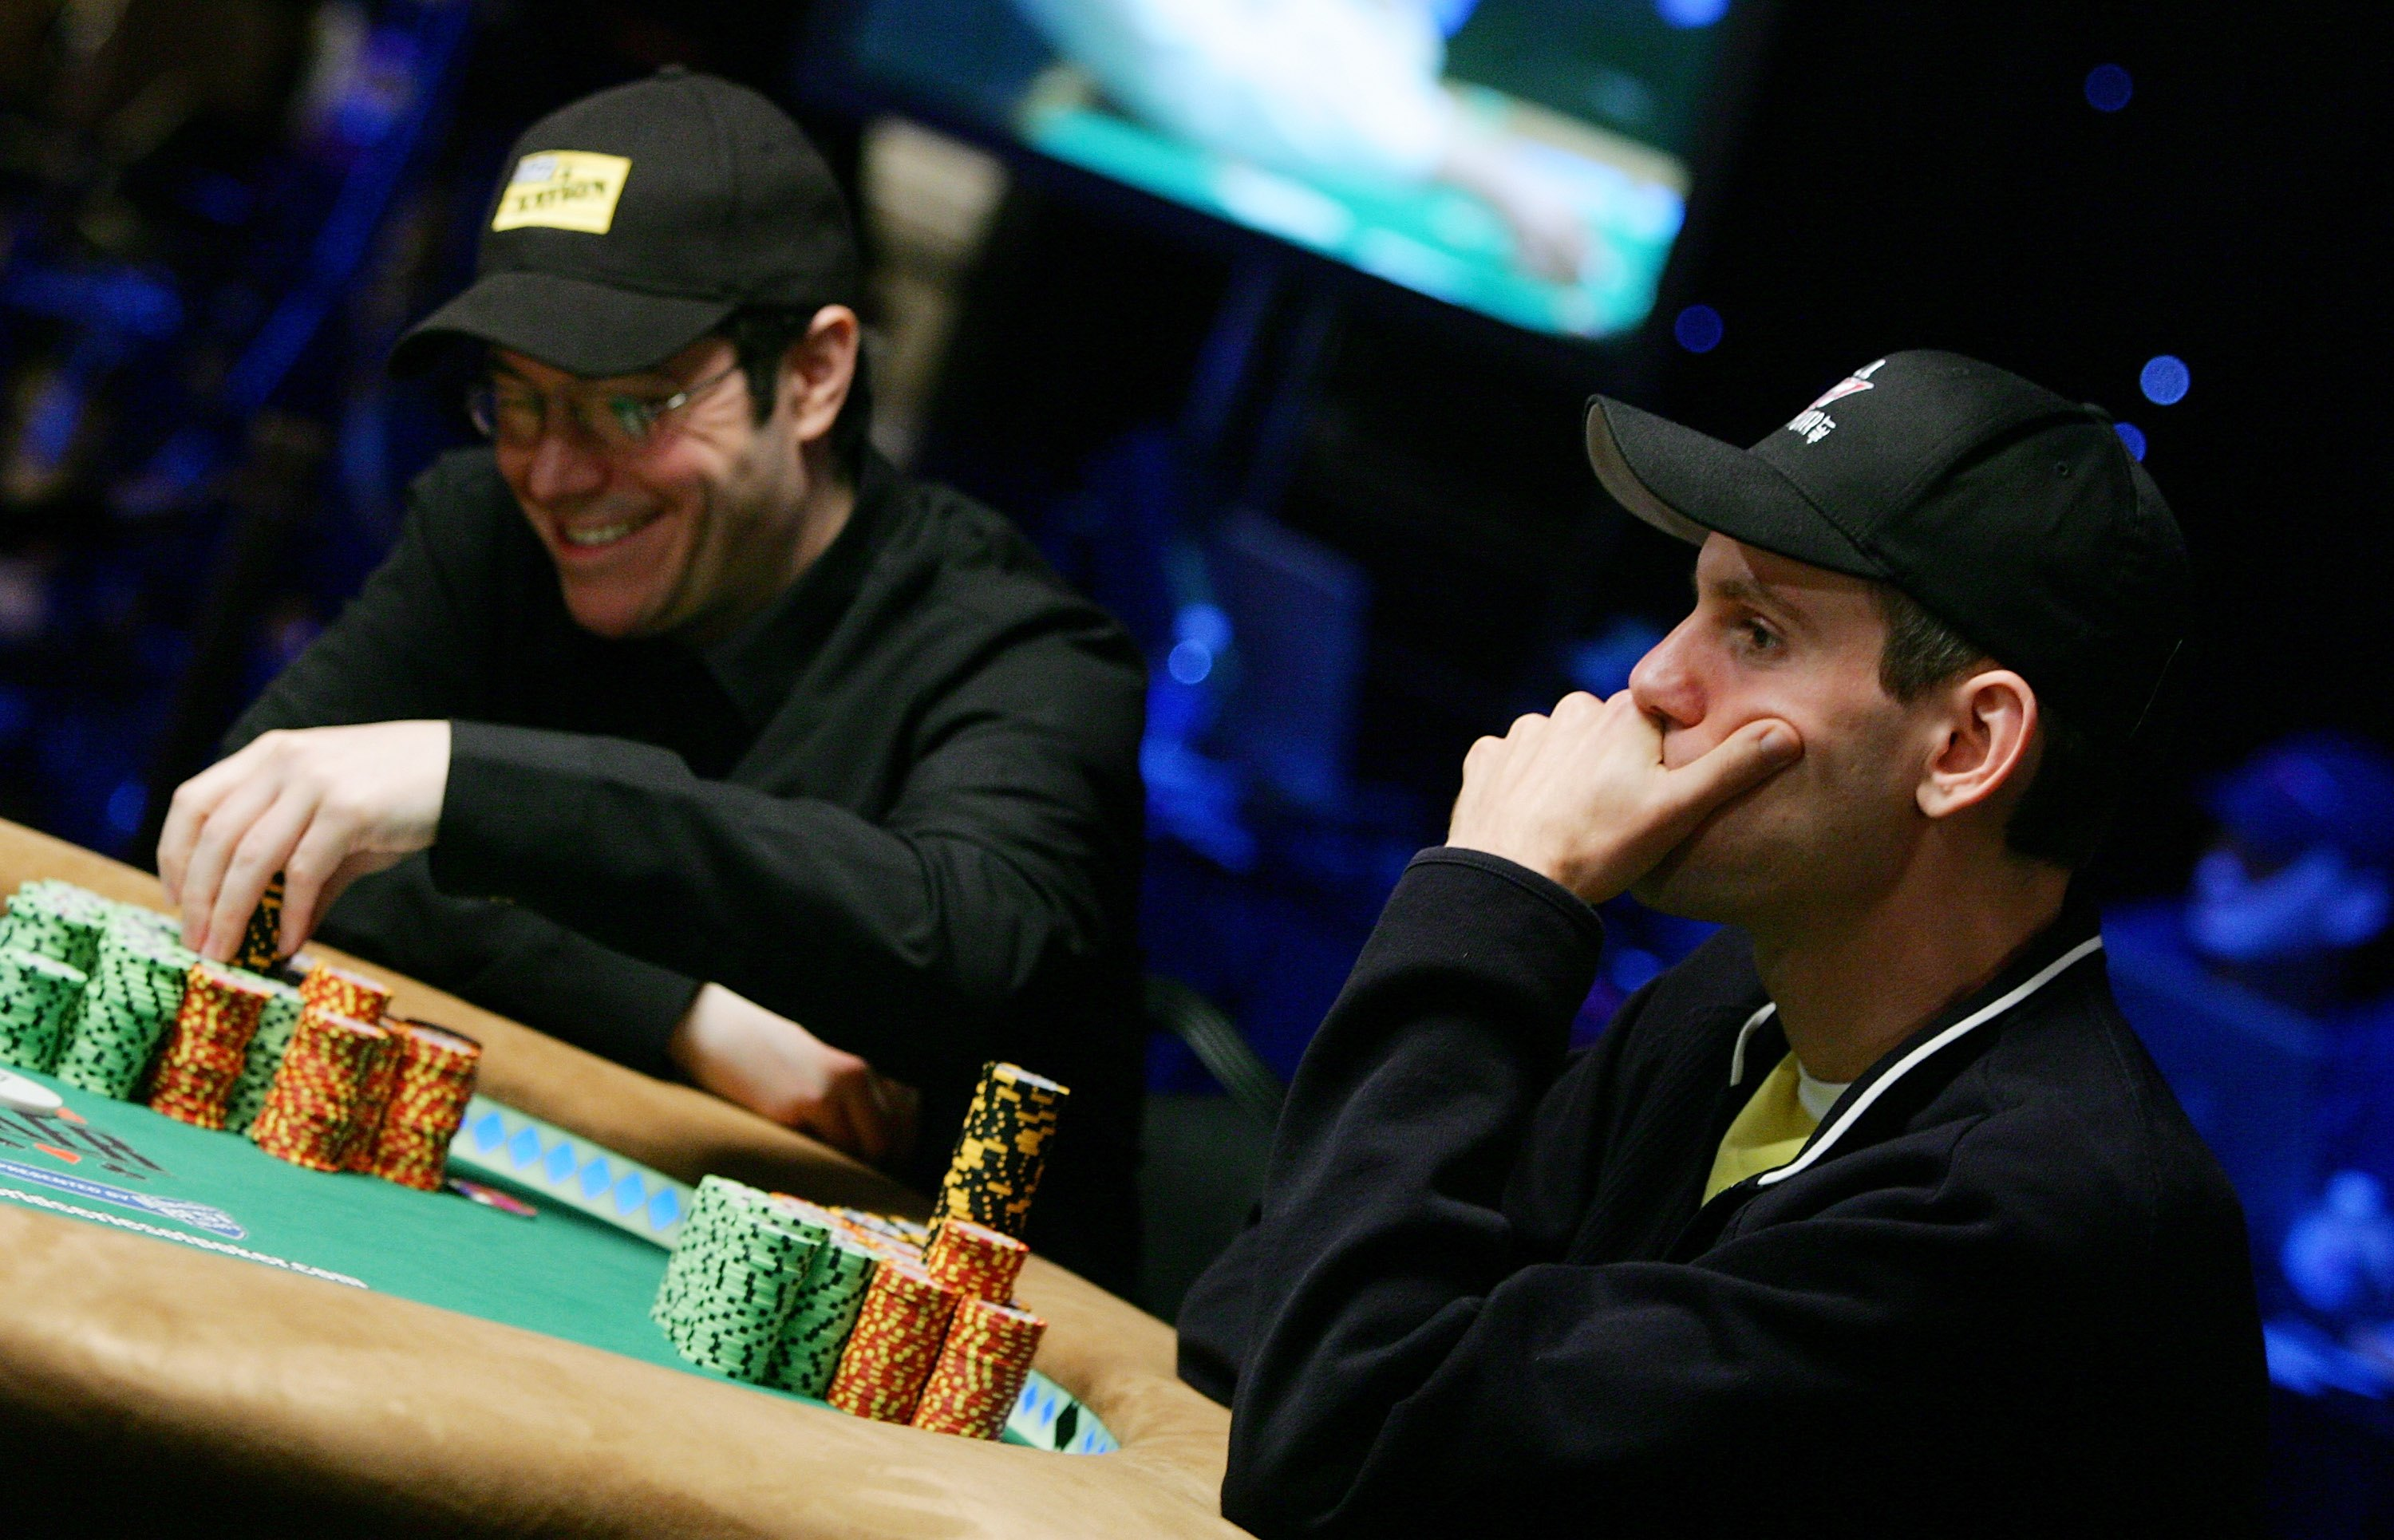 Chip leader Jamie Gold, left, of California and second place chip holder Allen Cunningham of Nevada compete during the World Series of Poker no-limit Texas Hold 'em main event in Las Vegas in 2006. The top prize was $12 million. (Ethan Miller/Getty Images)